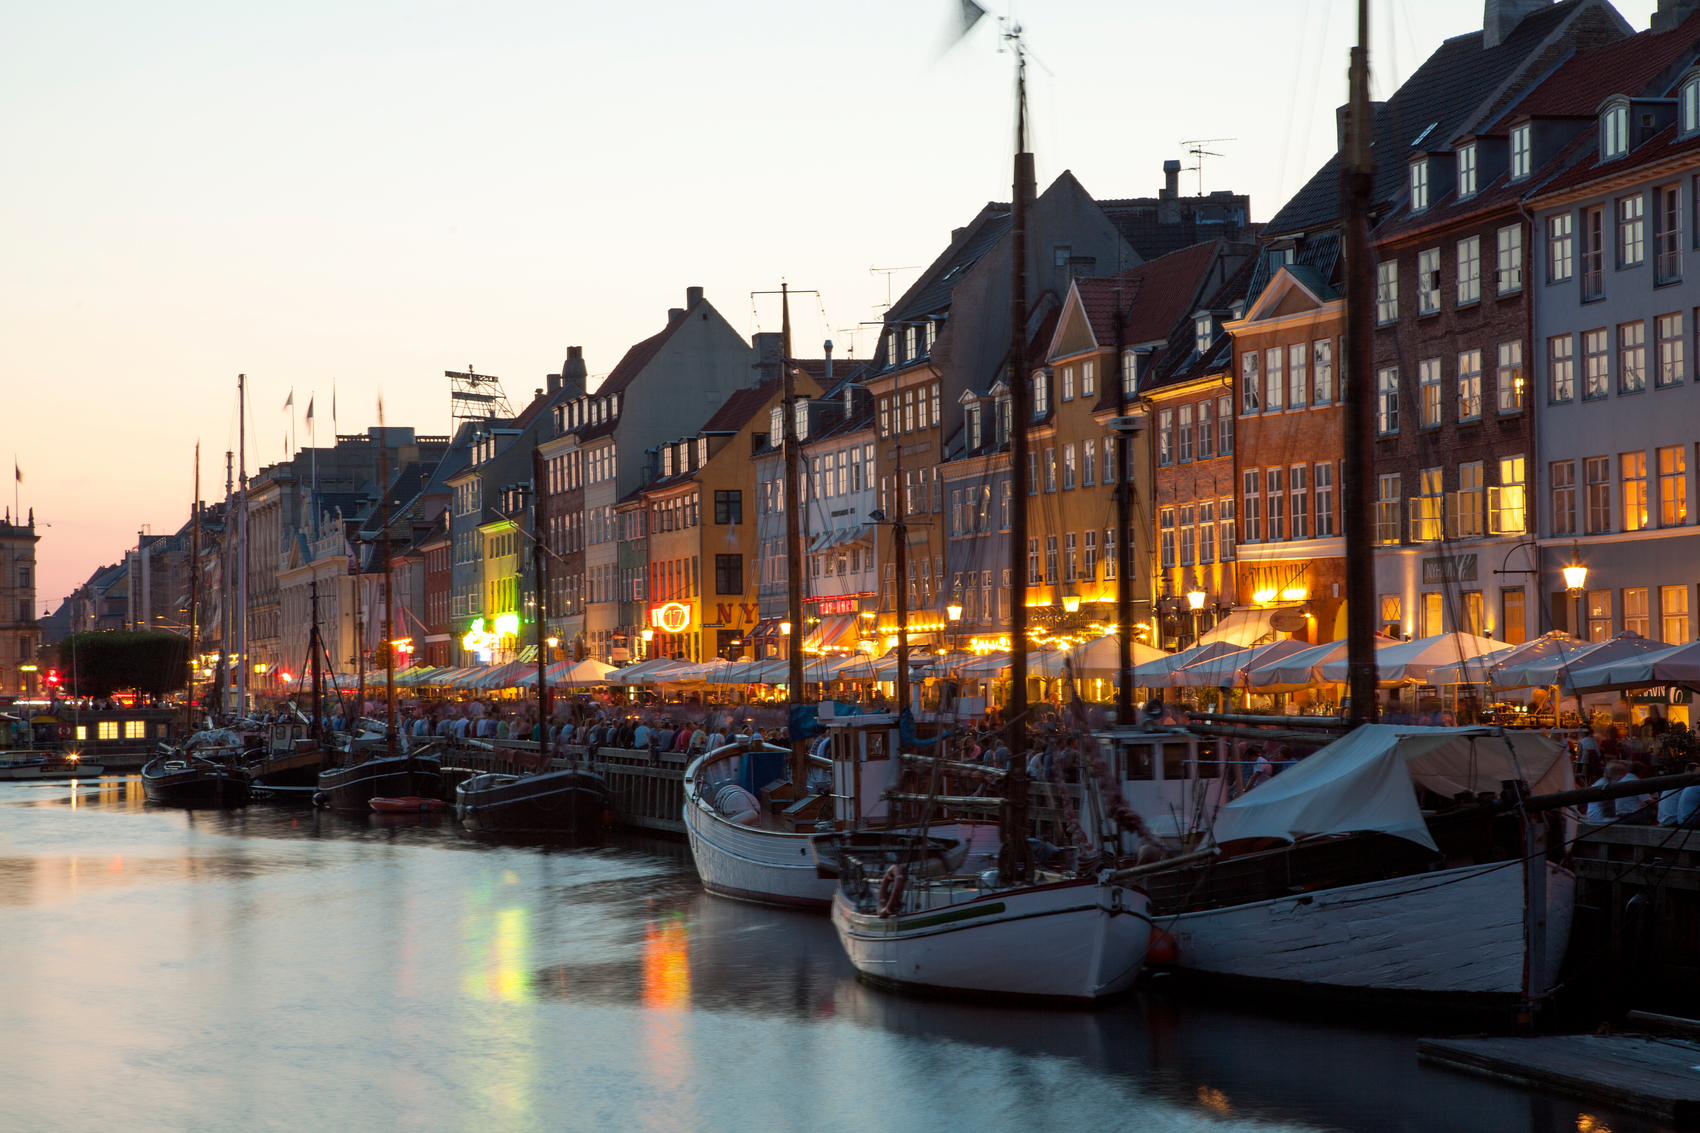 Nyhavn (Copenhague, Danemark)